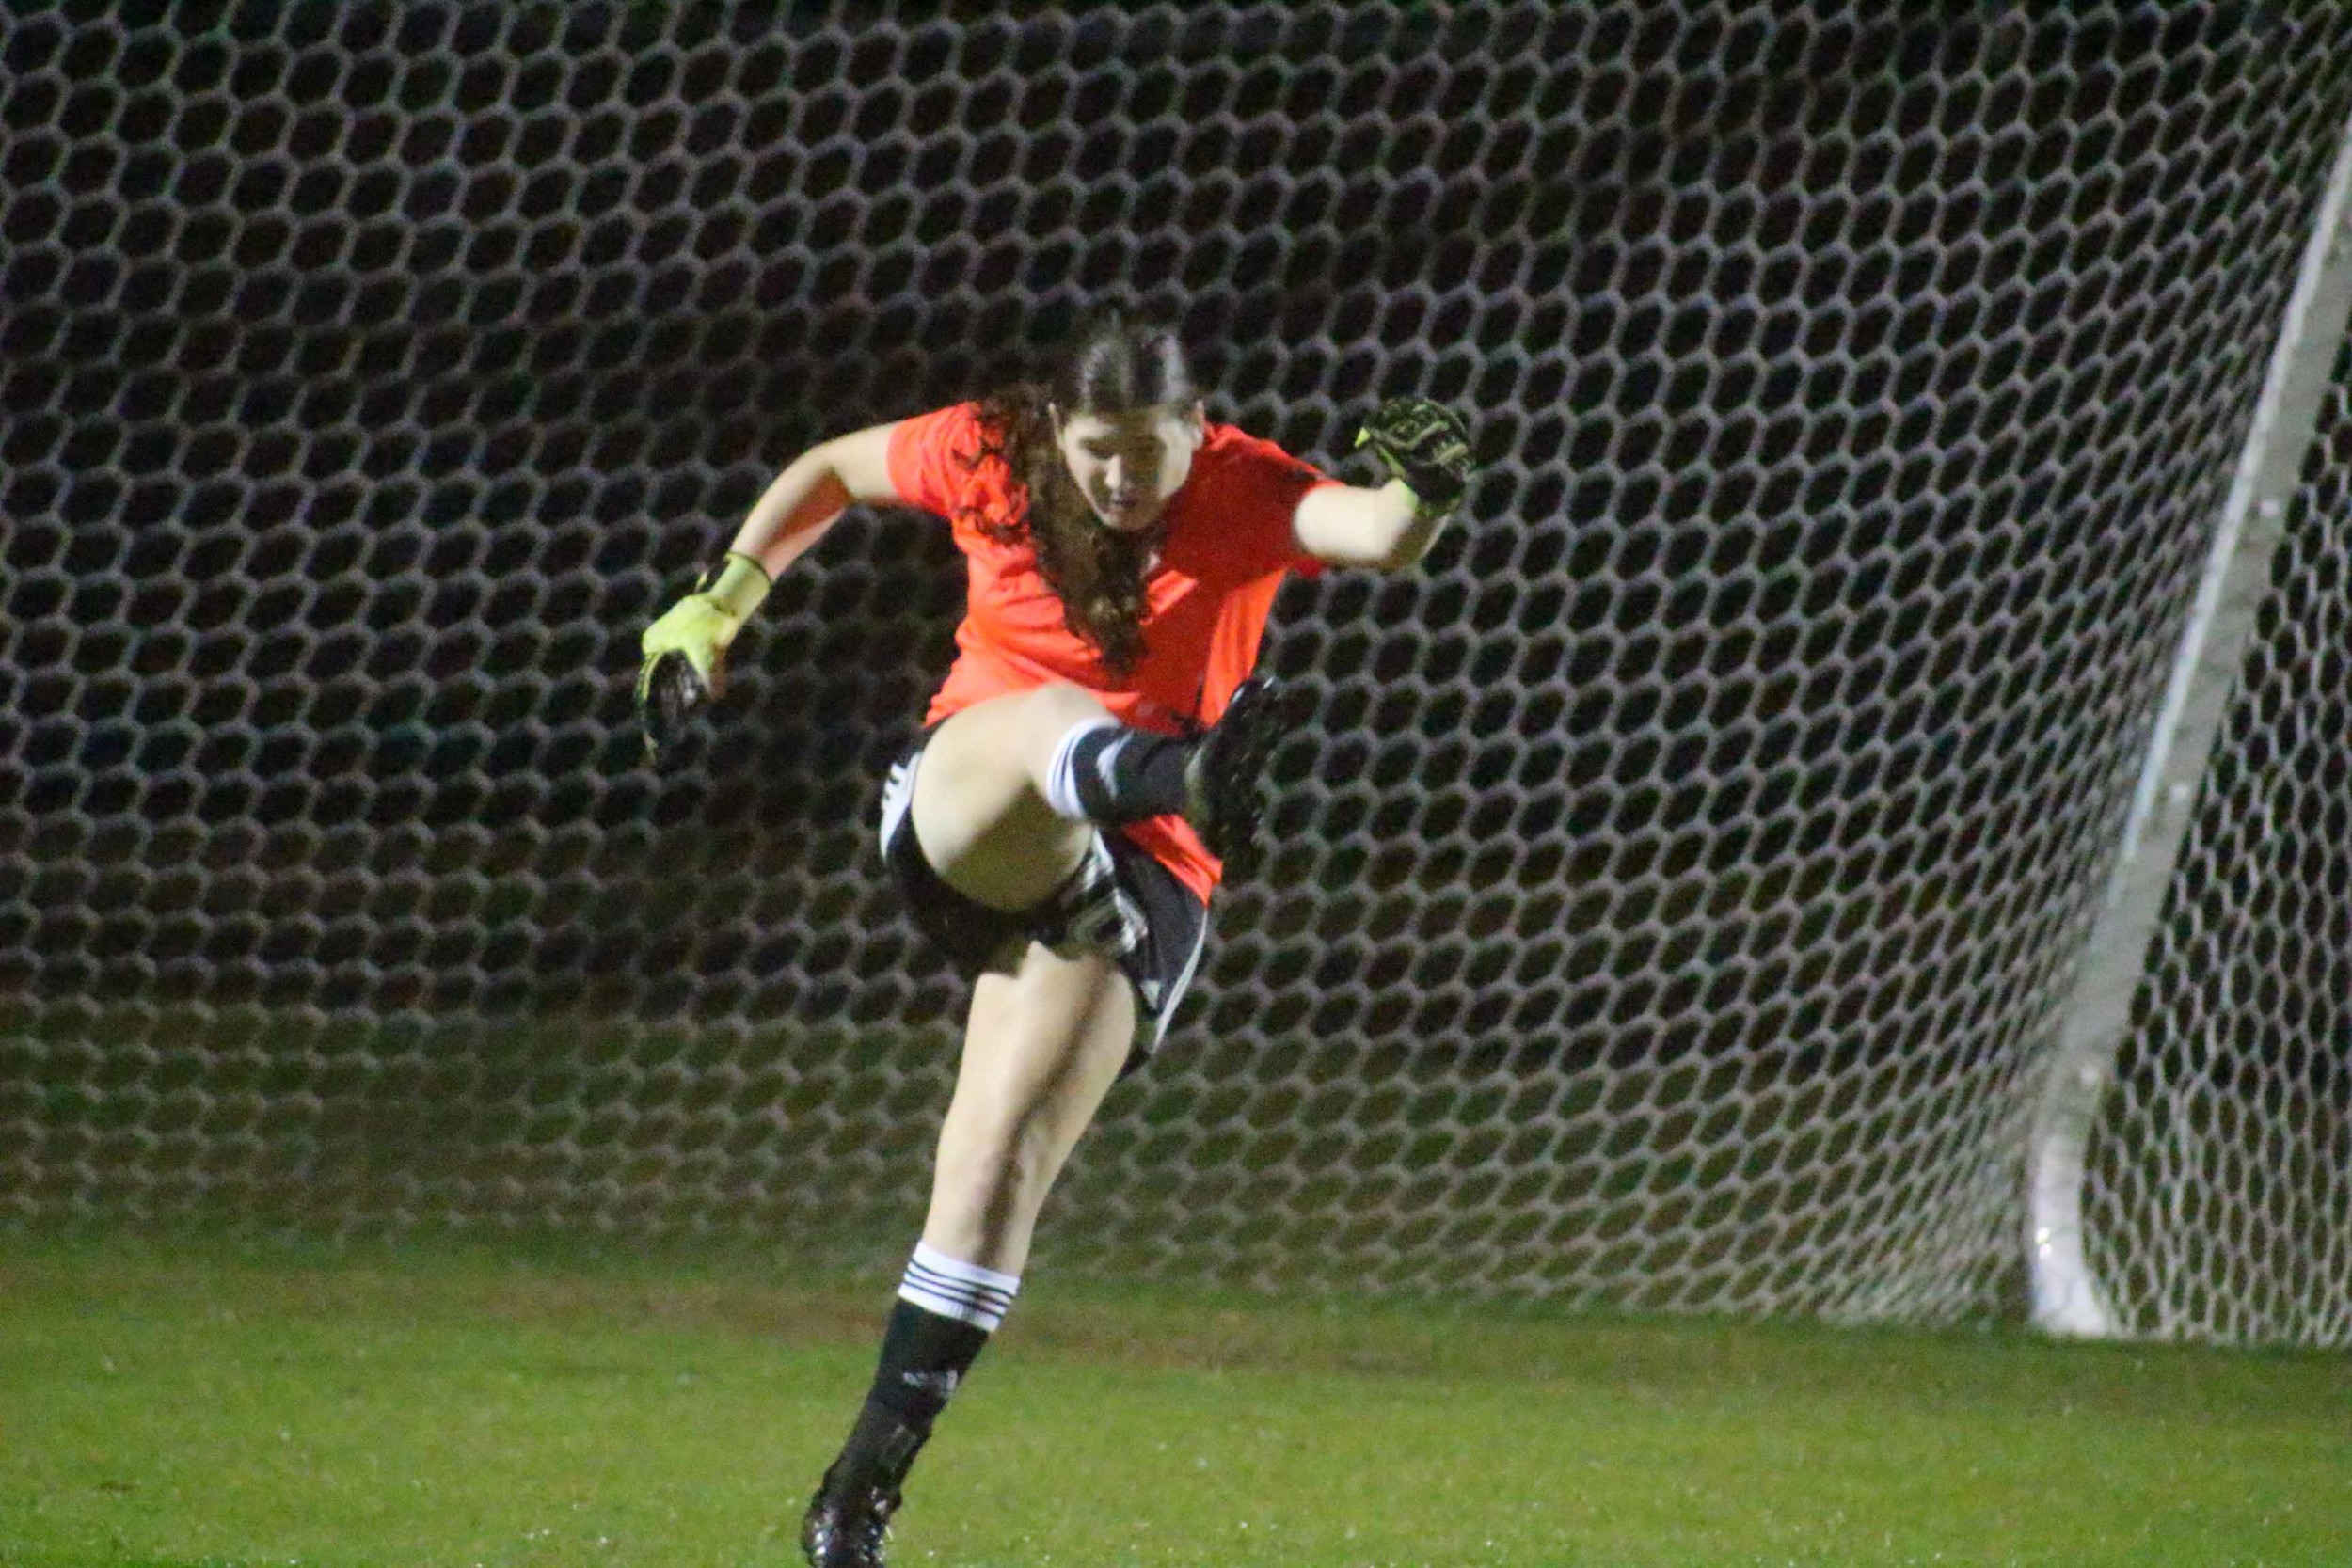 Oakleaf High junior Tabitha Weldon is a fearlessly goal wall for the Lady Knights.